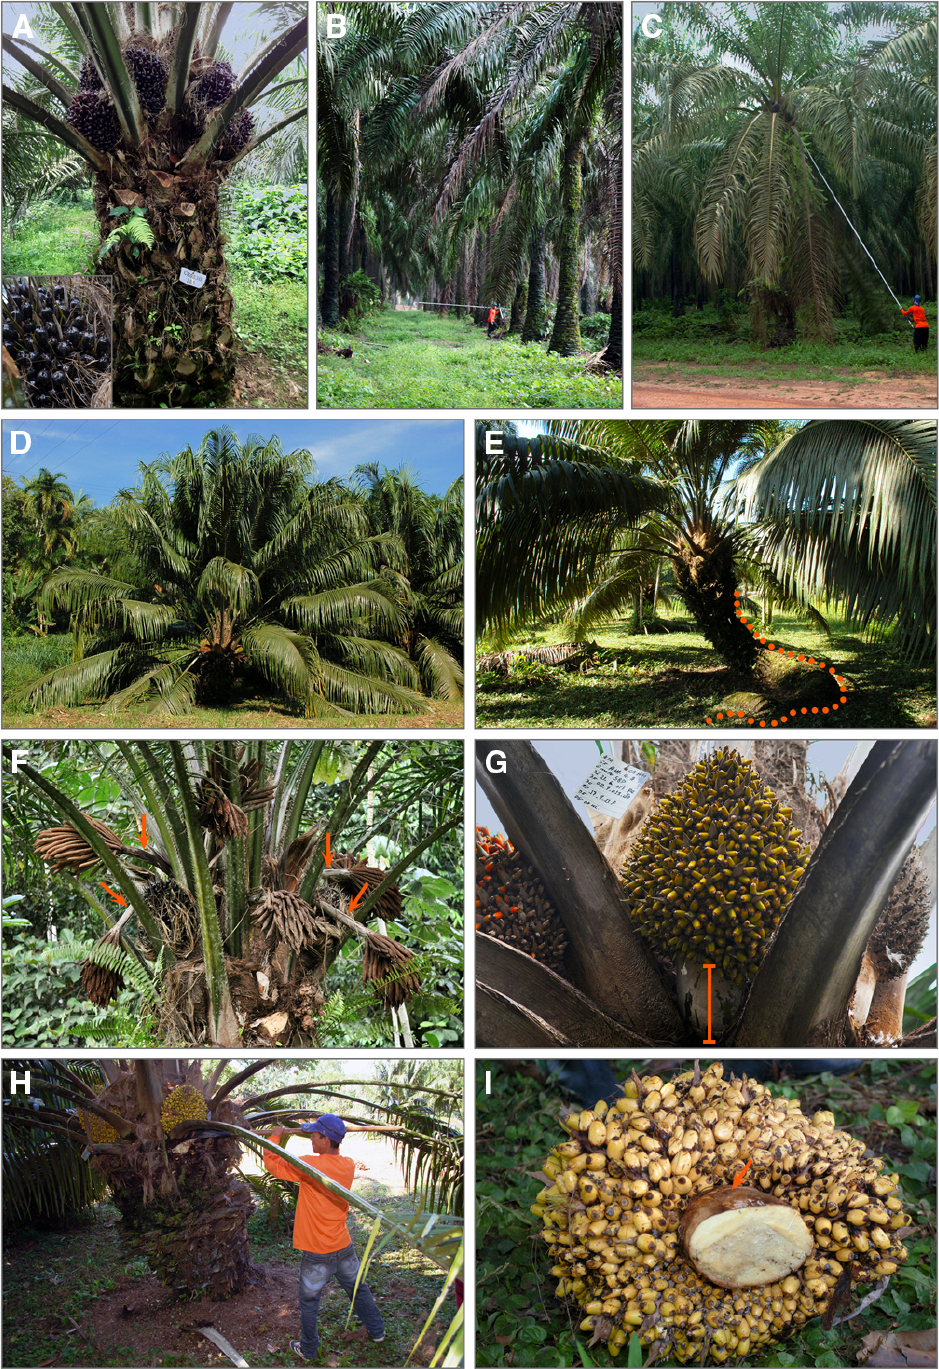 Frontiers Oil Palm Natural Diversity And The Potential